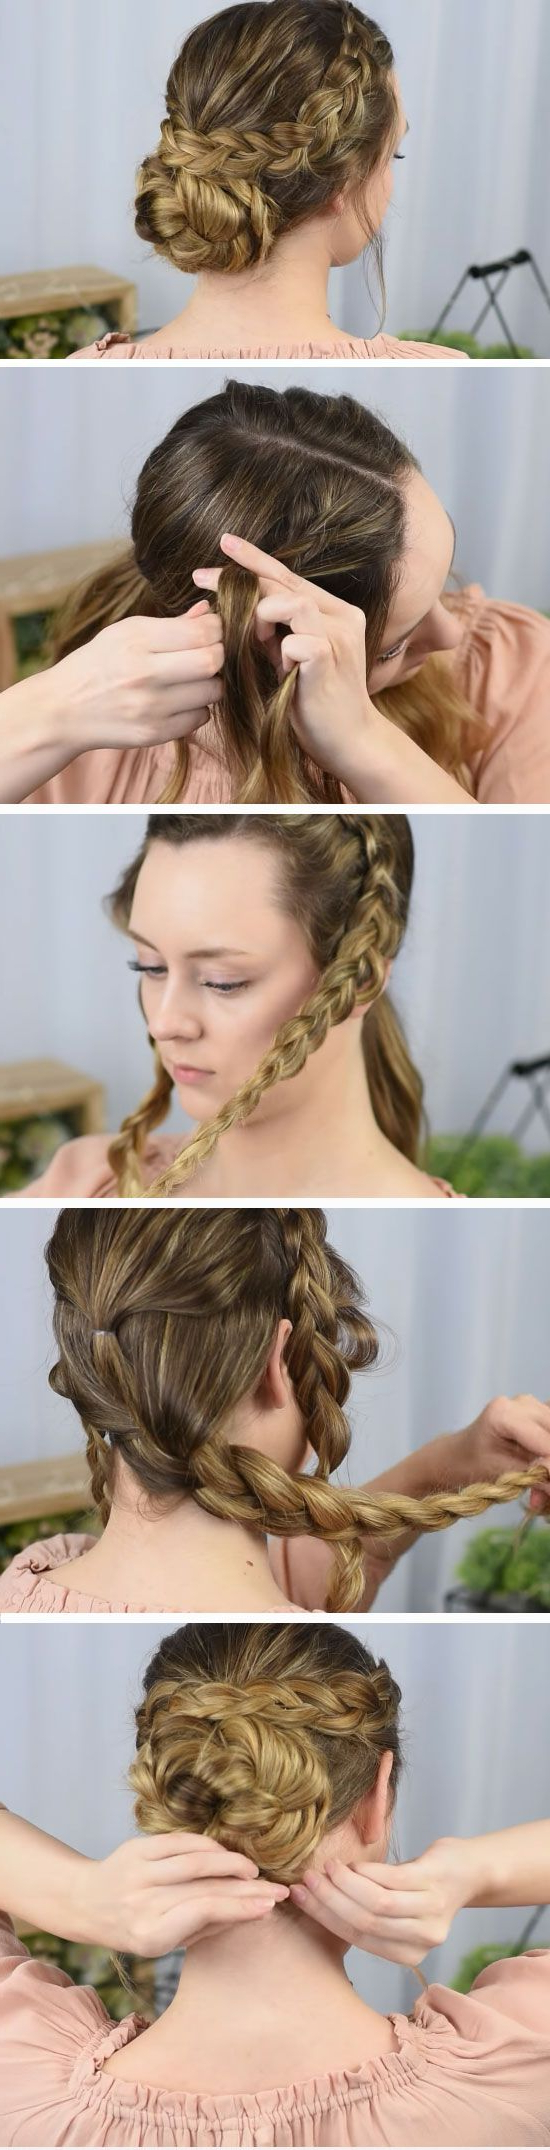 Fashionable Side Bun Twined Prom Hairstyles With A Braid Inside 15 Easy Diy Prom Hairstyles For Medium Hair (View 8 of 20)